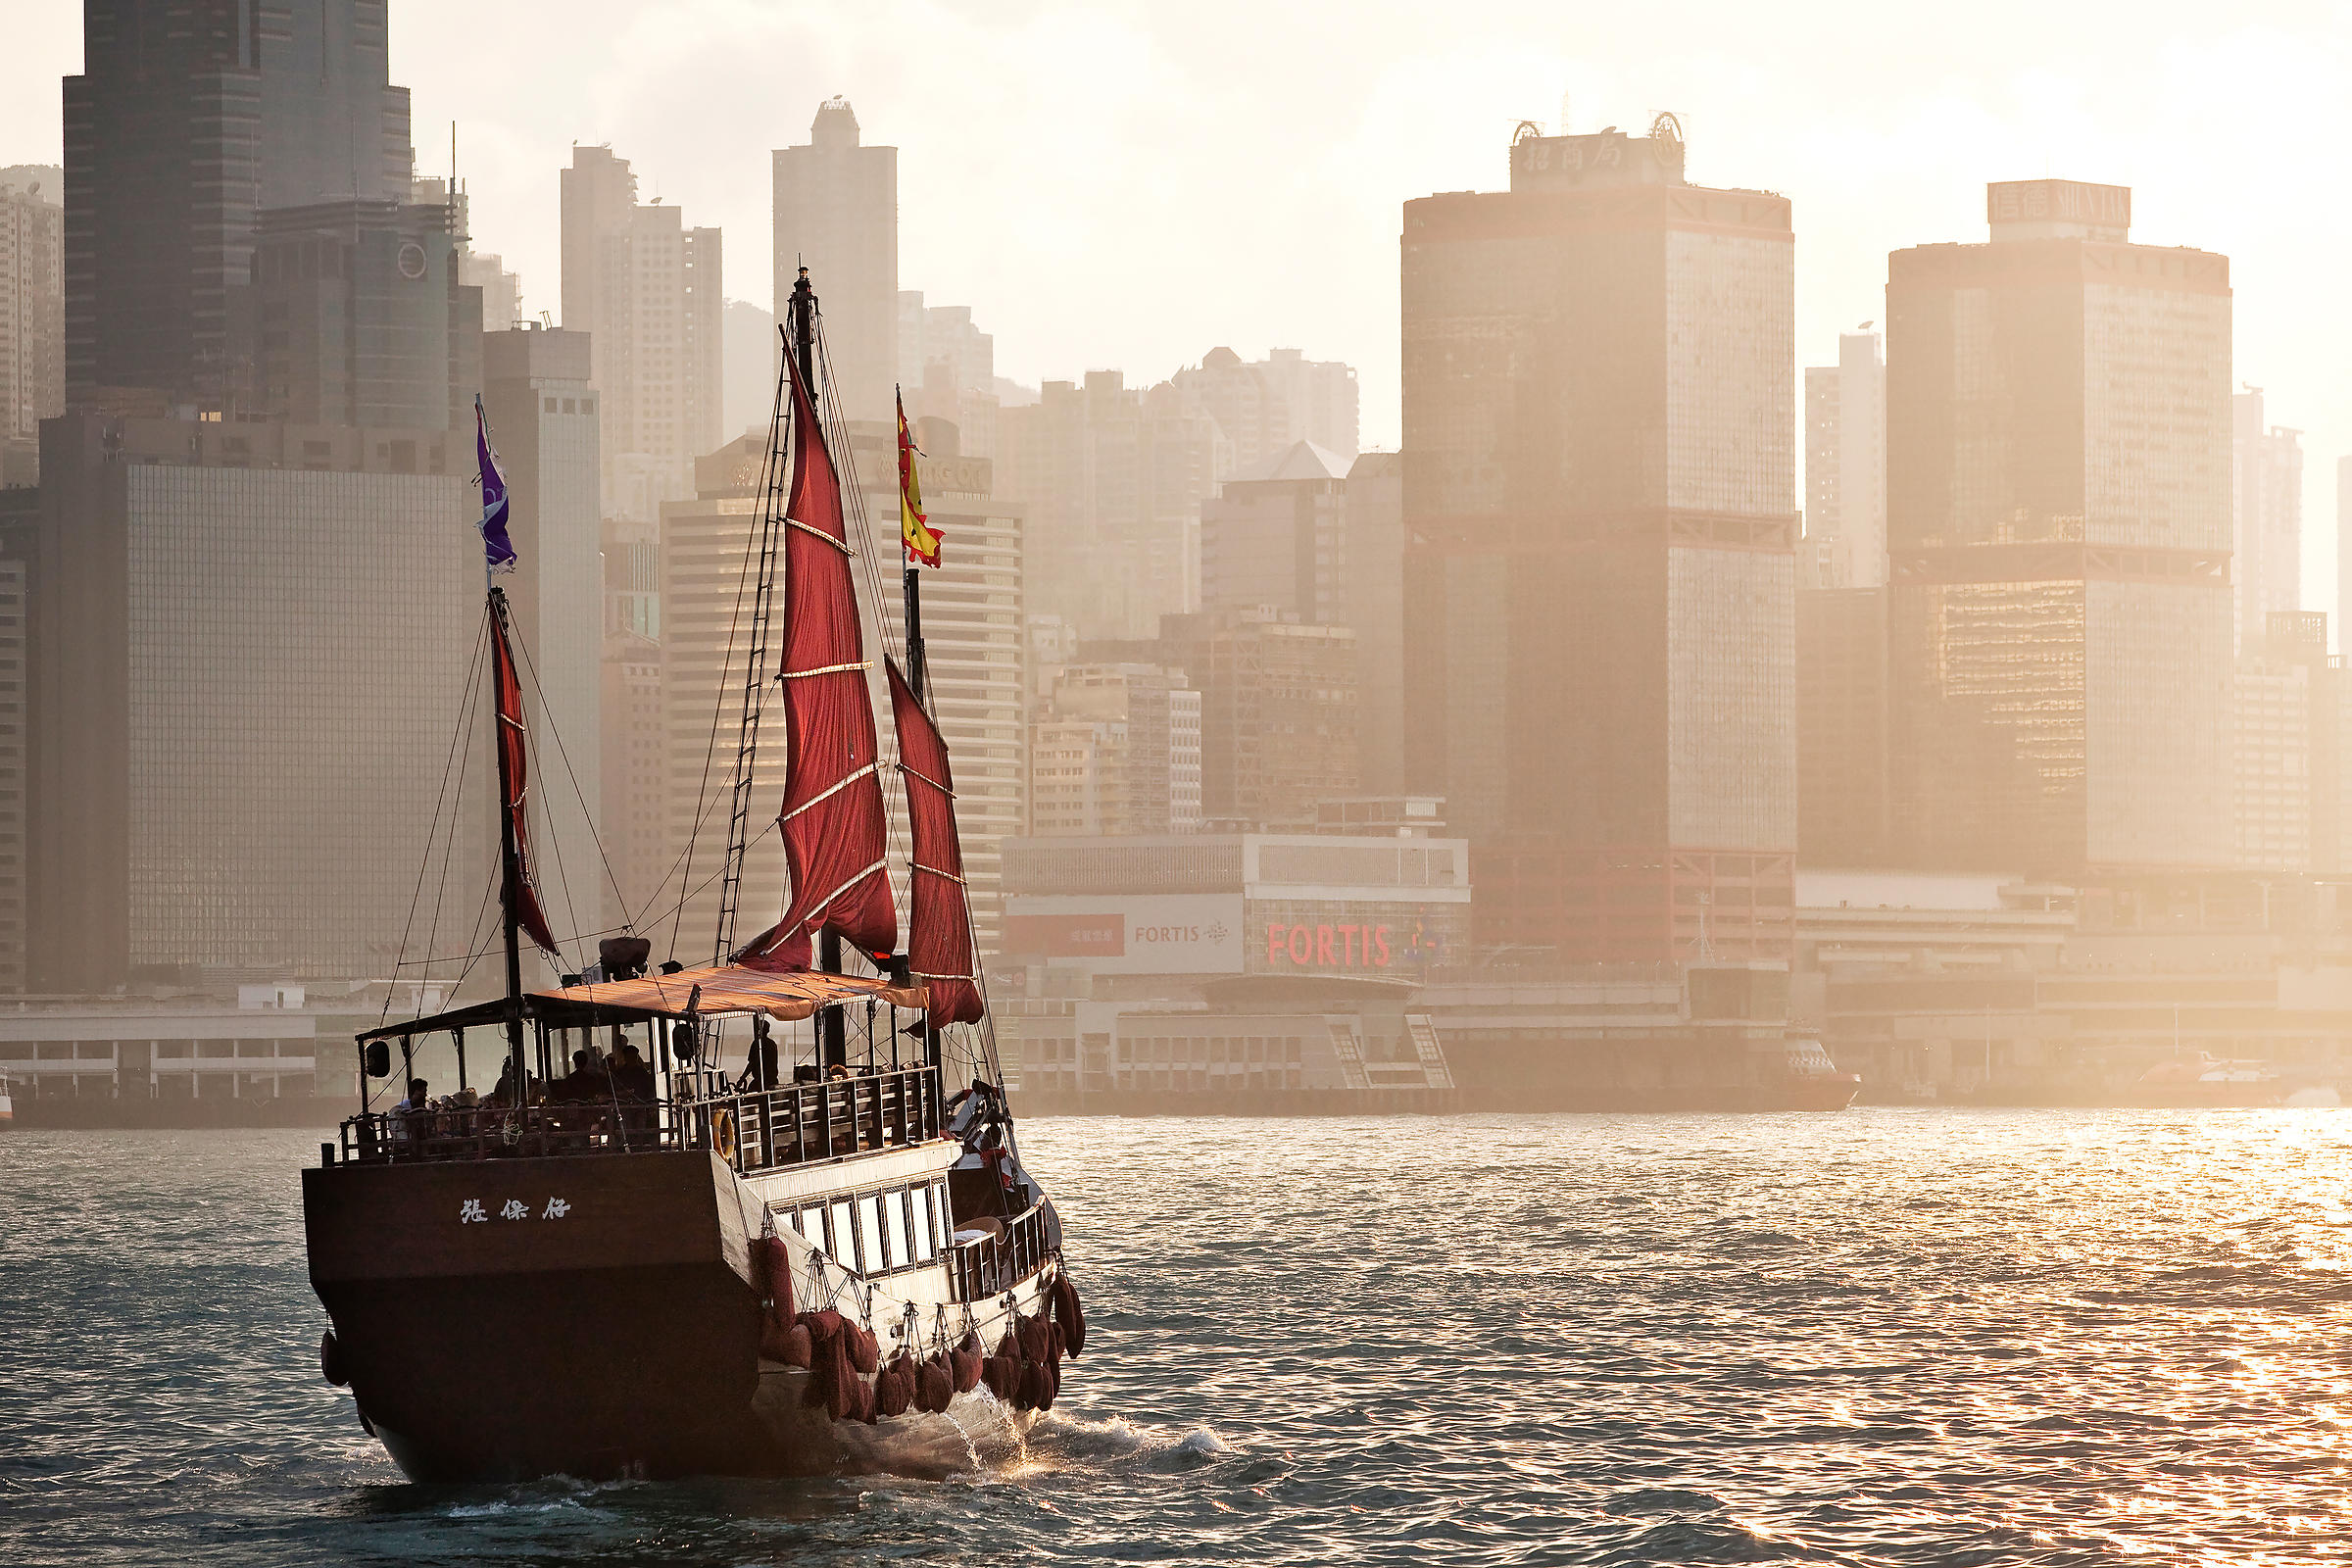 Hong_Kong_new_redone_UNDER_THE_SKY_(2)_(3840x2560)_(80_0.9)